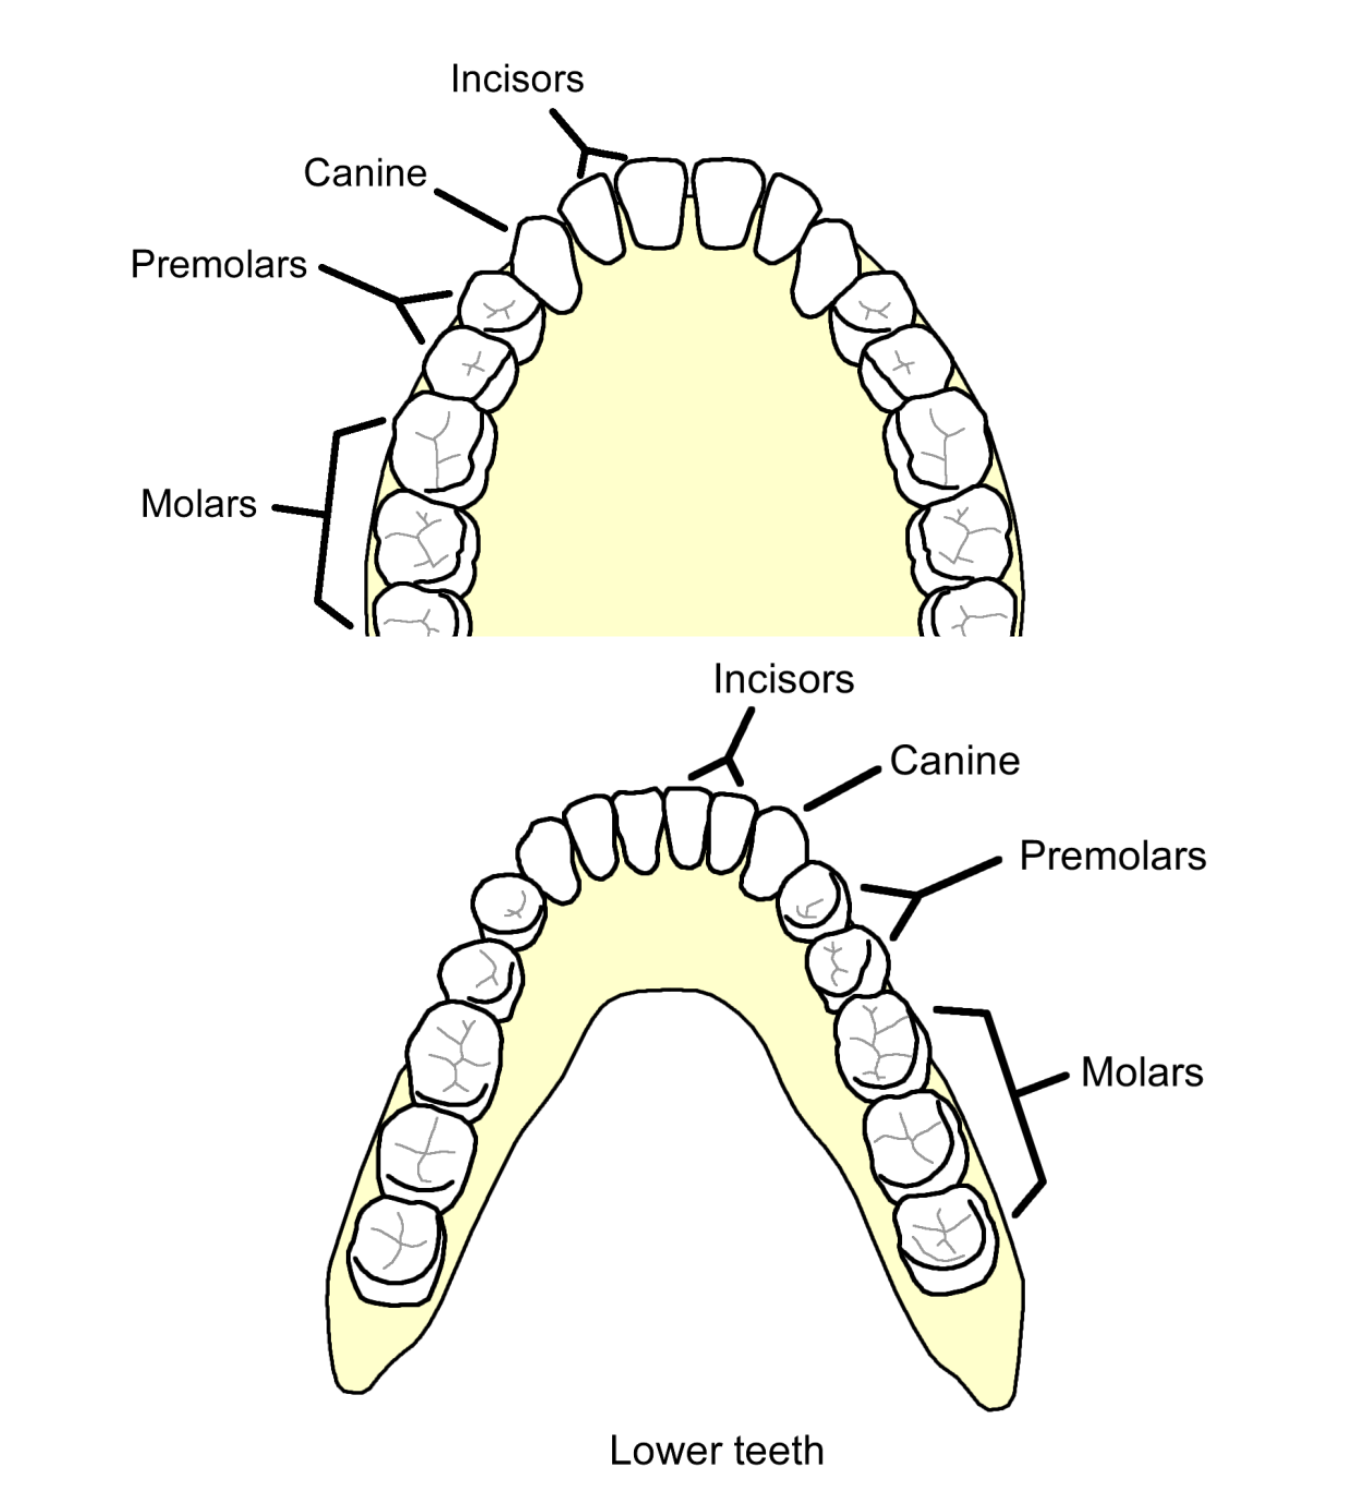 medium resolution of our last permanent teeth referred to as our wisdom teeth usually emerge when we are 17 to 25 years old we have four kinds of adult teeth incisors